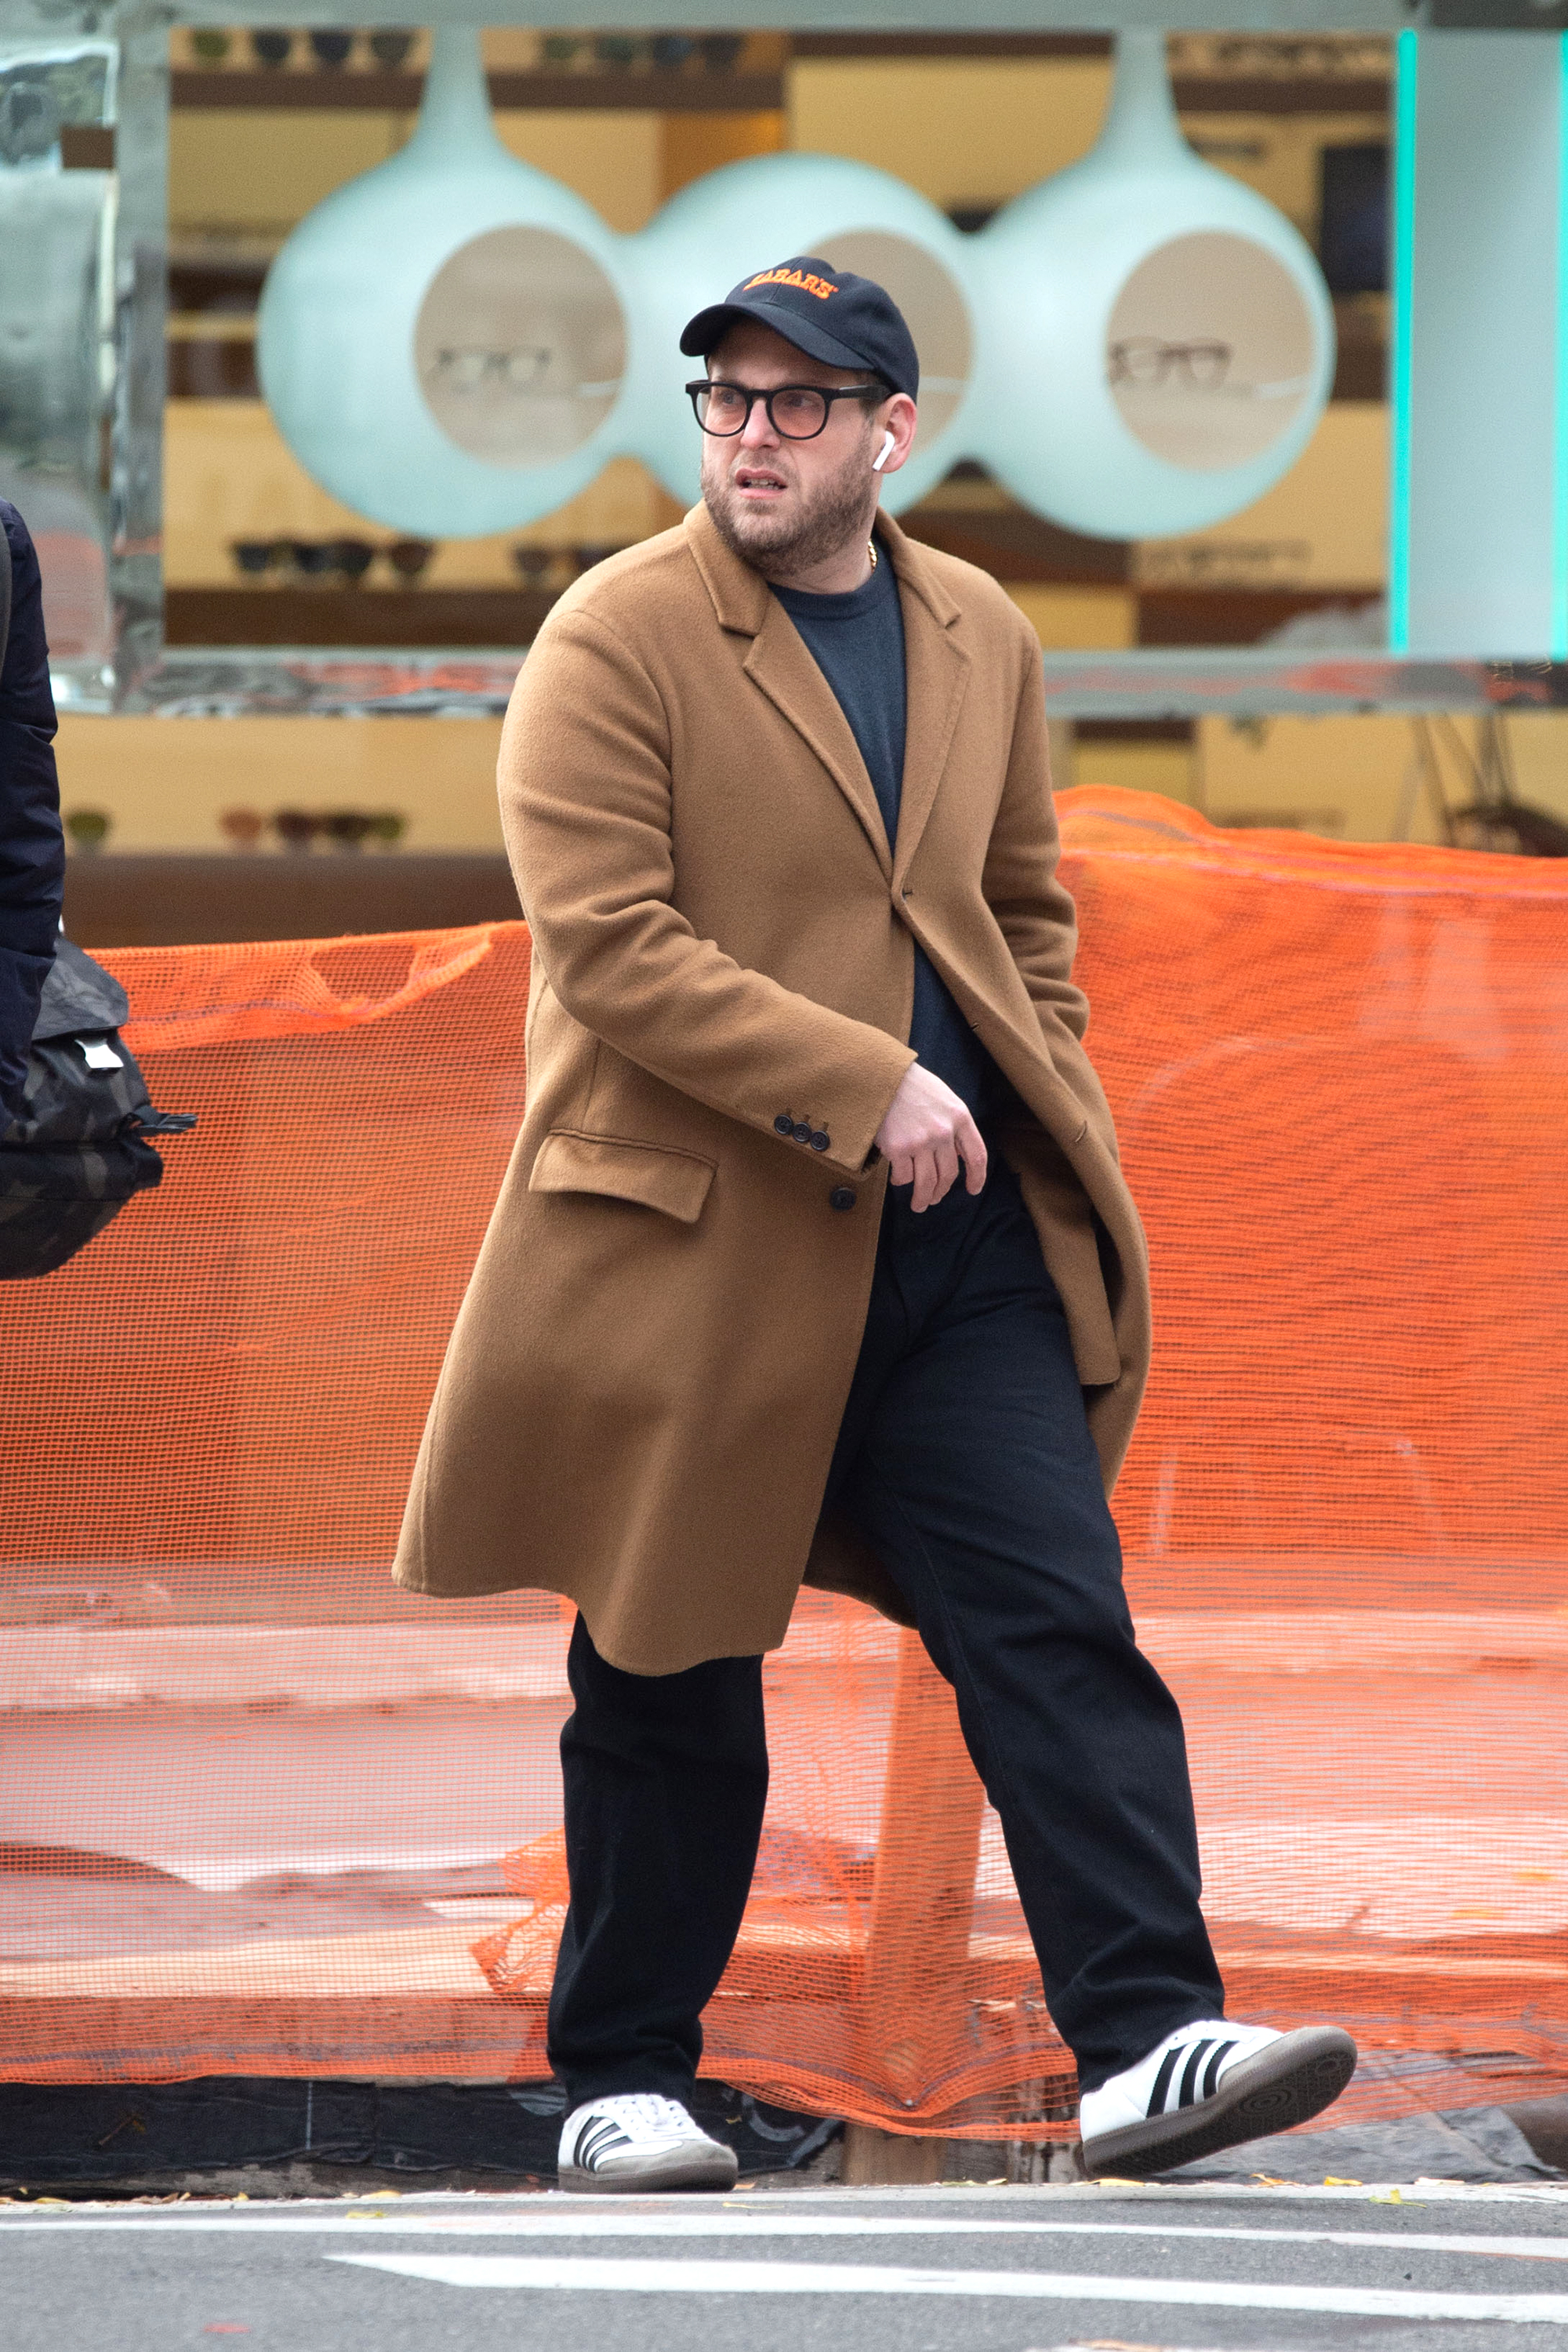 """jonah hill weight loss - 96 Normal 0 false false false EN-US X-NONE X-NONE /* Style Definitions */ table. MsoNormalTable {mso-style-name:""""Table Normal""""; mso-tstyle-rowband-size:0; mso-tstyle-colband-size:0; mso-style-noshow:yes; mso-style-priority:99; mso-style-parent:""""""""; mso-padding-alt:0in 5.4pt 0in 5.4pt; mso-para-margin:0in; mso-para-margin-bottom:.0001pt; mso-pagination:widow-orphan; font-size:12.0pt; font-family:""""Calibri"""",sans-serif; mso-ascii-font-family:Calibri; mso-ascii-theme-font:minor-latin; mso-hansi-font-family:Calibri; mso-hansi-theme-font:minor-latin;} A long camel coat didn't add bulk to the Mid90s director's trim frame as he strolled through New York City."""